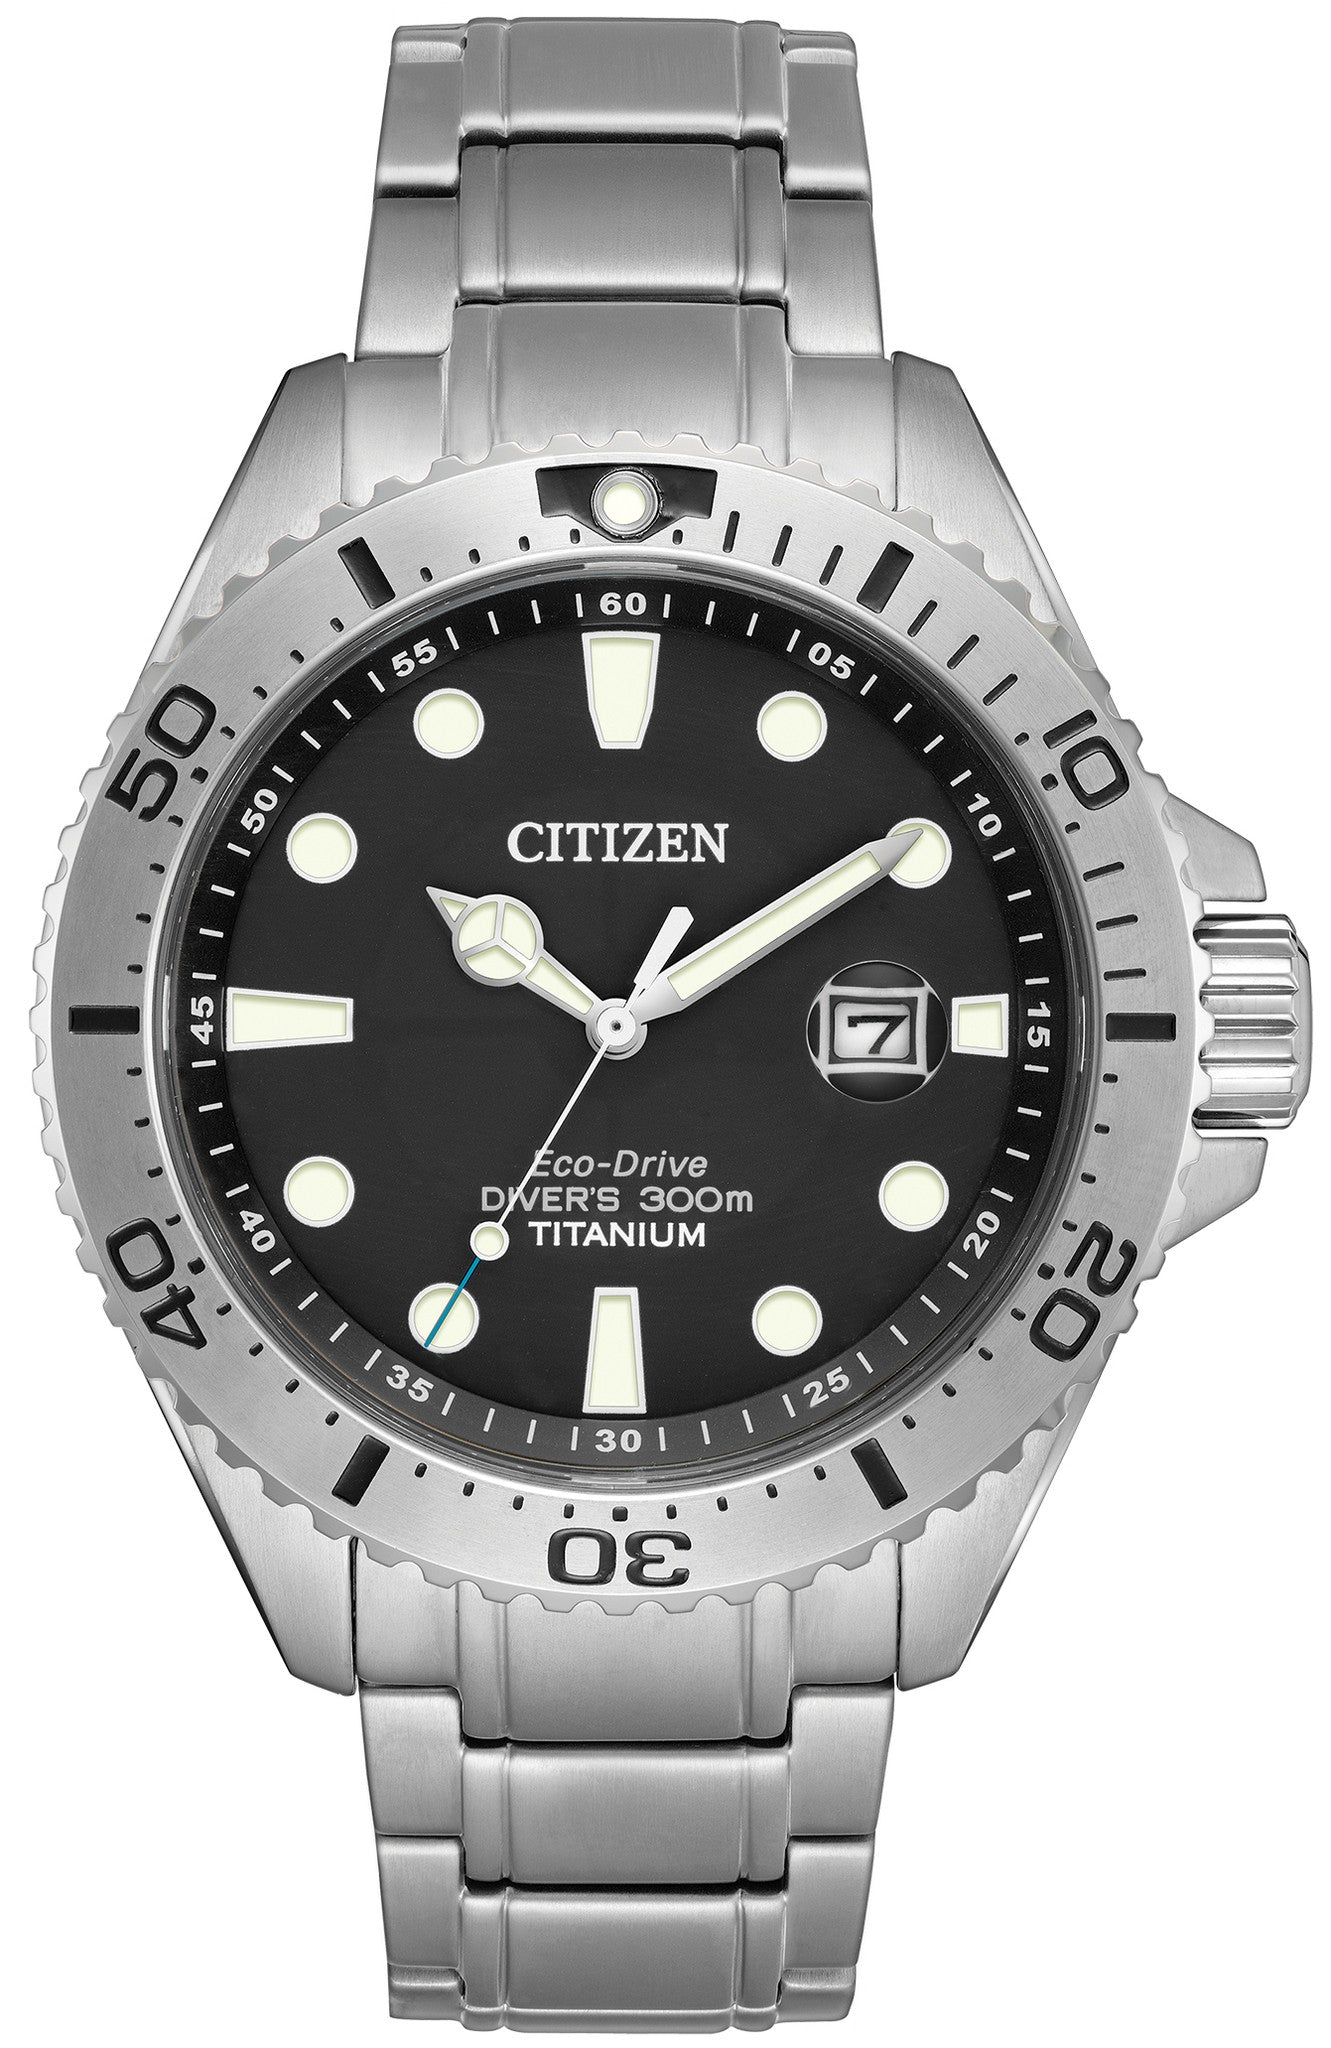 Citizen Watch Royal Marines Commando Limited Edition